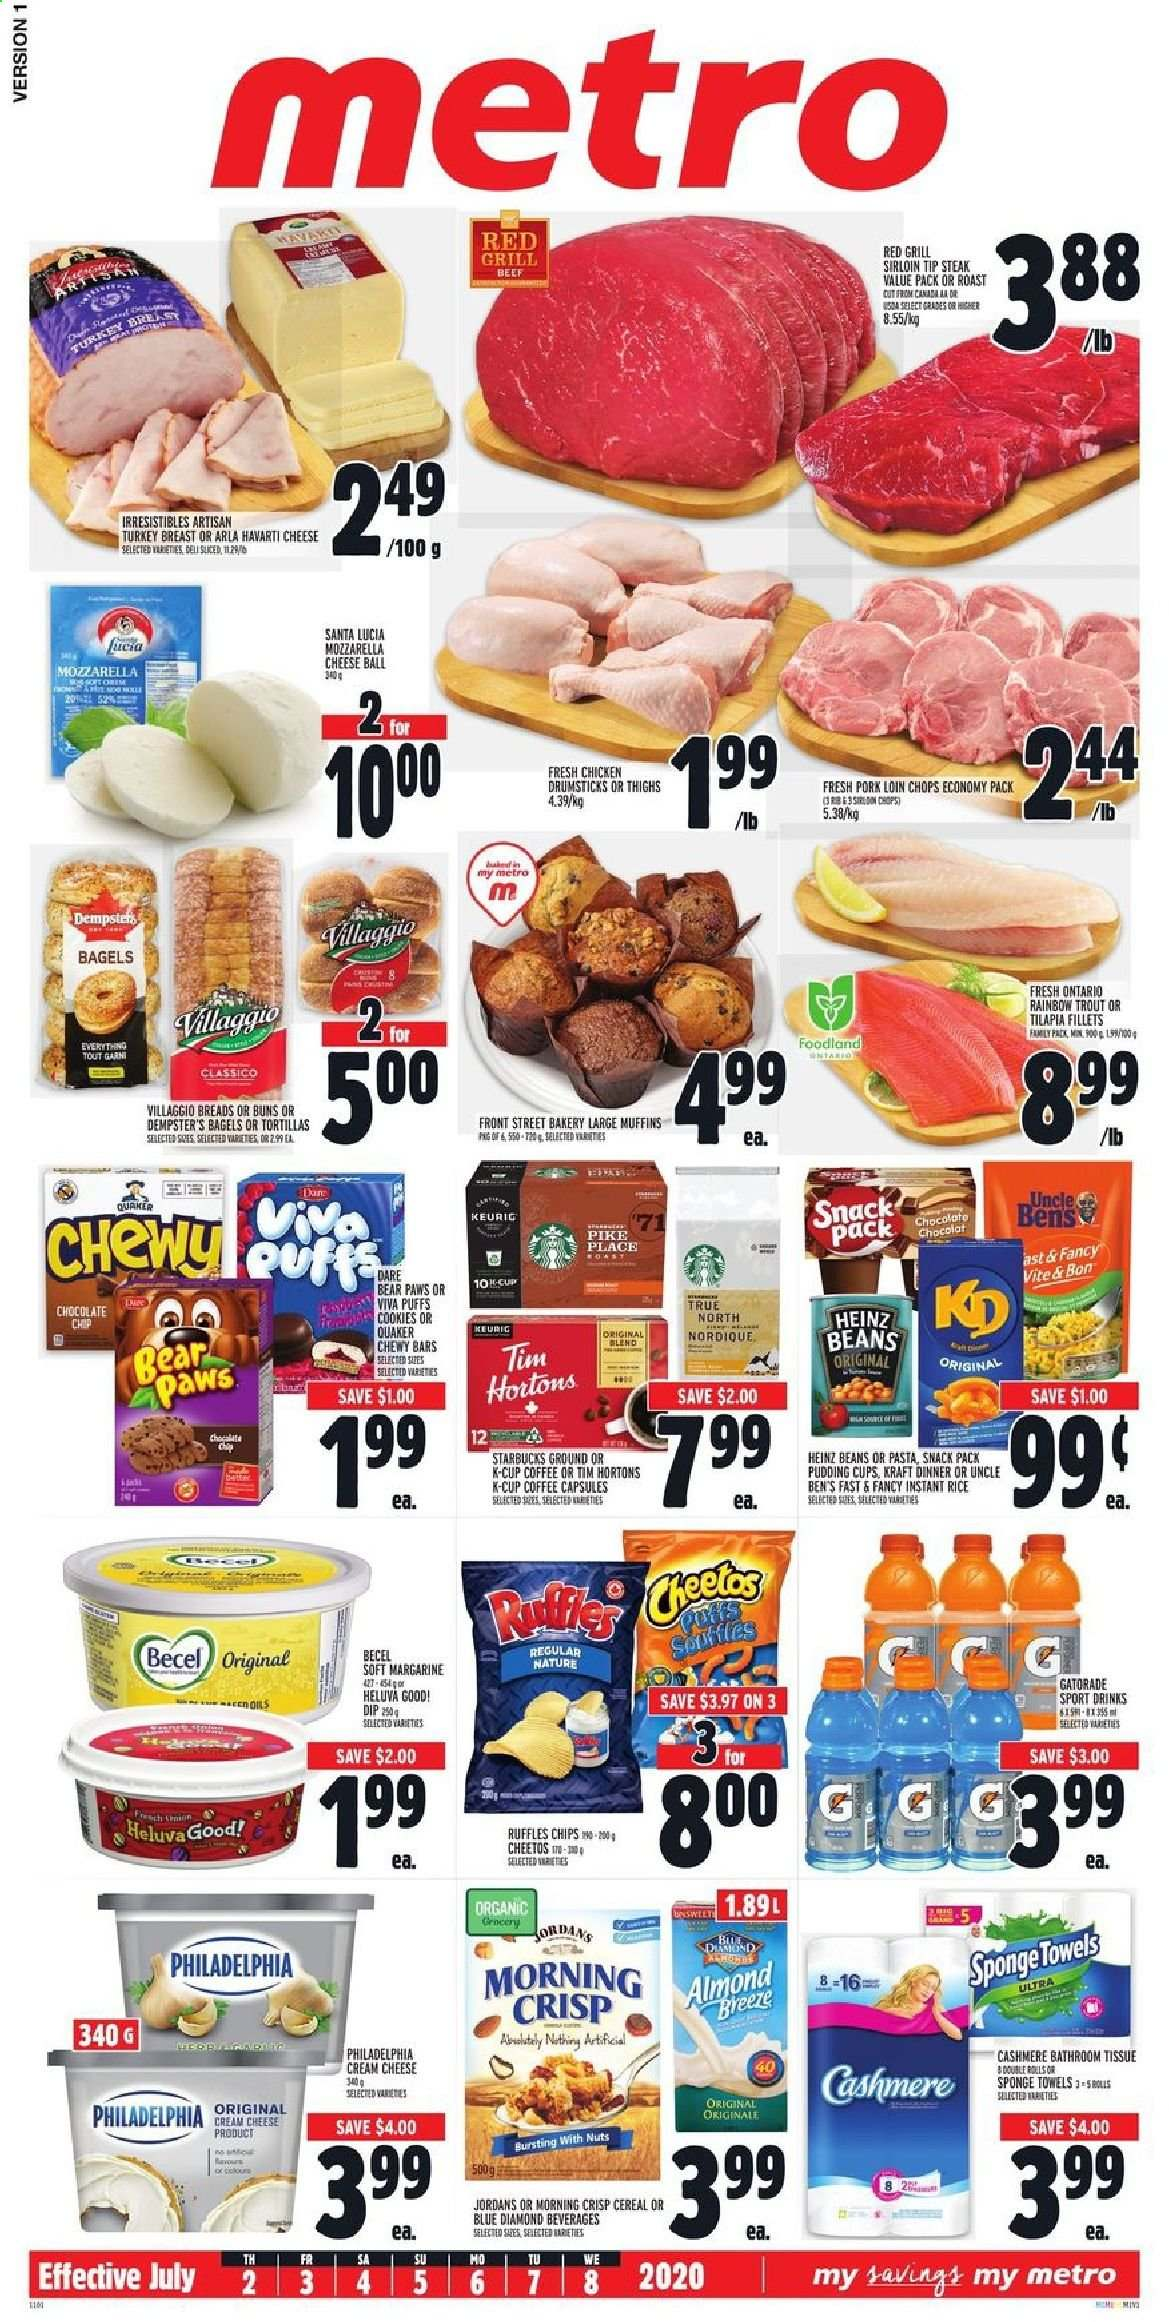 Metro Flyer - July 02, 2020 - July 08, 2020 - Sales products - bagels, beans, beef meat, capsules, cereals, coffee, cookies, cream cheese, cup, grill, margarine, mozzarella, muffins, rice, santa, starbucks, tilapia, tortillas, towel, trout, turkey, turkey breast, havarti cheese, heinz, philadelphia, pike, pork loin, pork meat, pudding, puffs, cheetos, chicken, chicken drumsticks, organic, chips, chocolate, steak, cheese, snack, sponge, cereal, pasta, soa, nuts, chocolat, gril, tortilla, metro. Page 1.